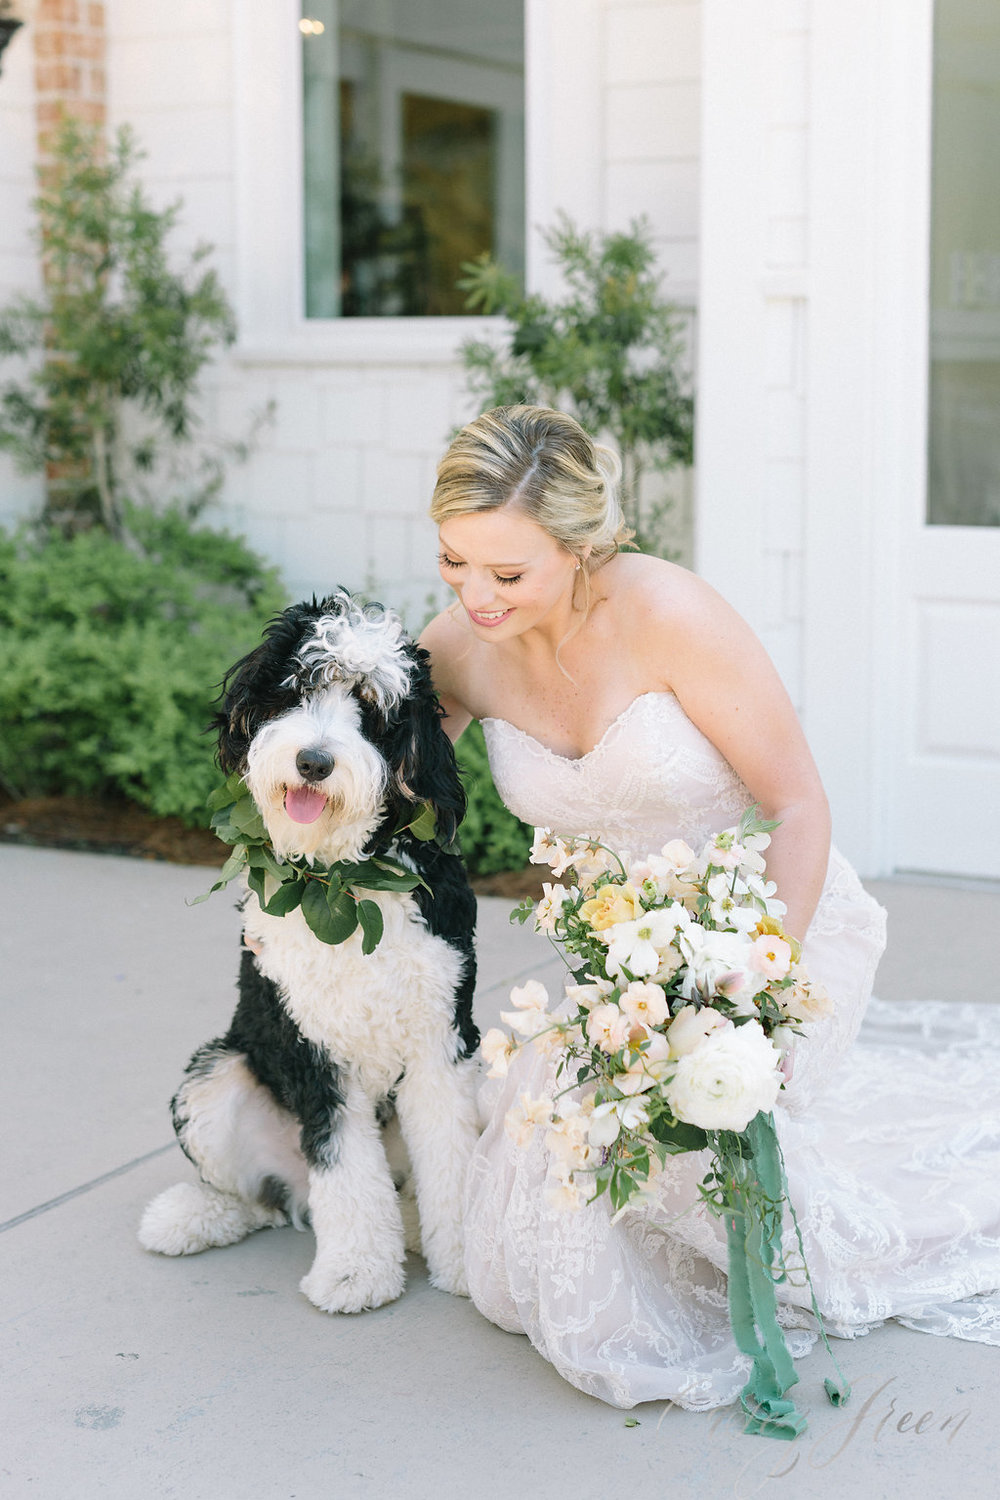 savannah-bridal-shop-ivory-and-beau-bridal-boutique-casey-green-photography-tybee-island-chapel-wedding-planning-mistakes-3.jpg